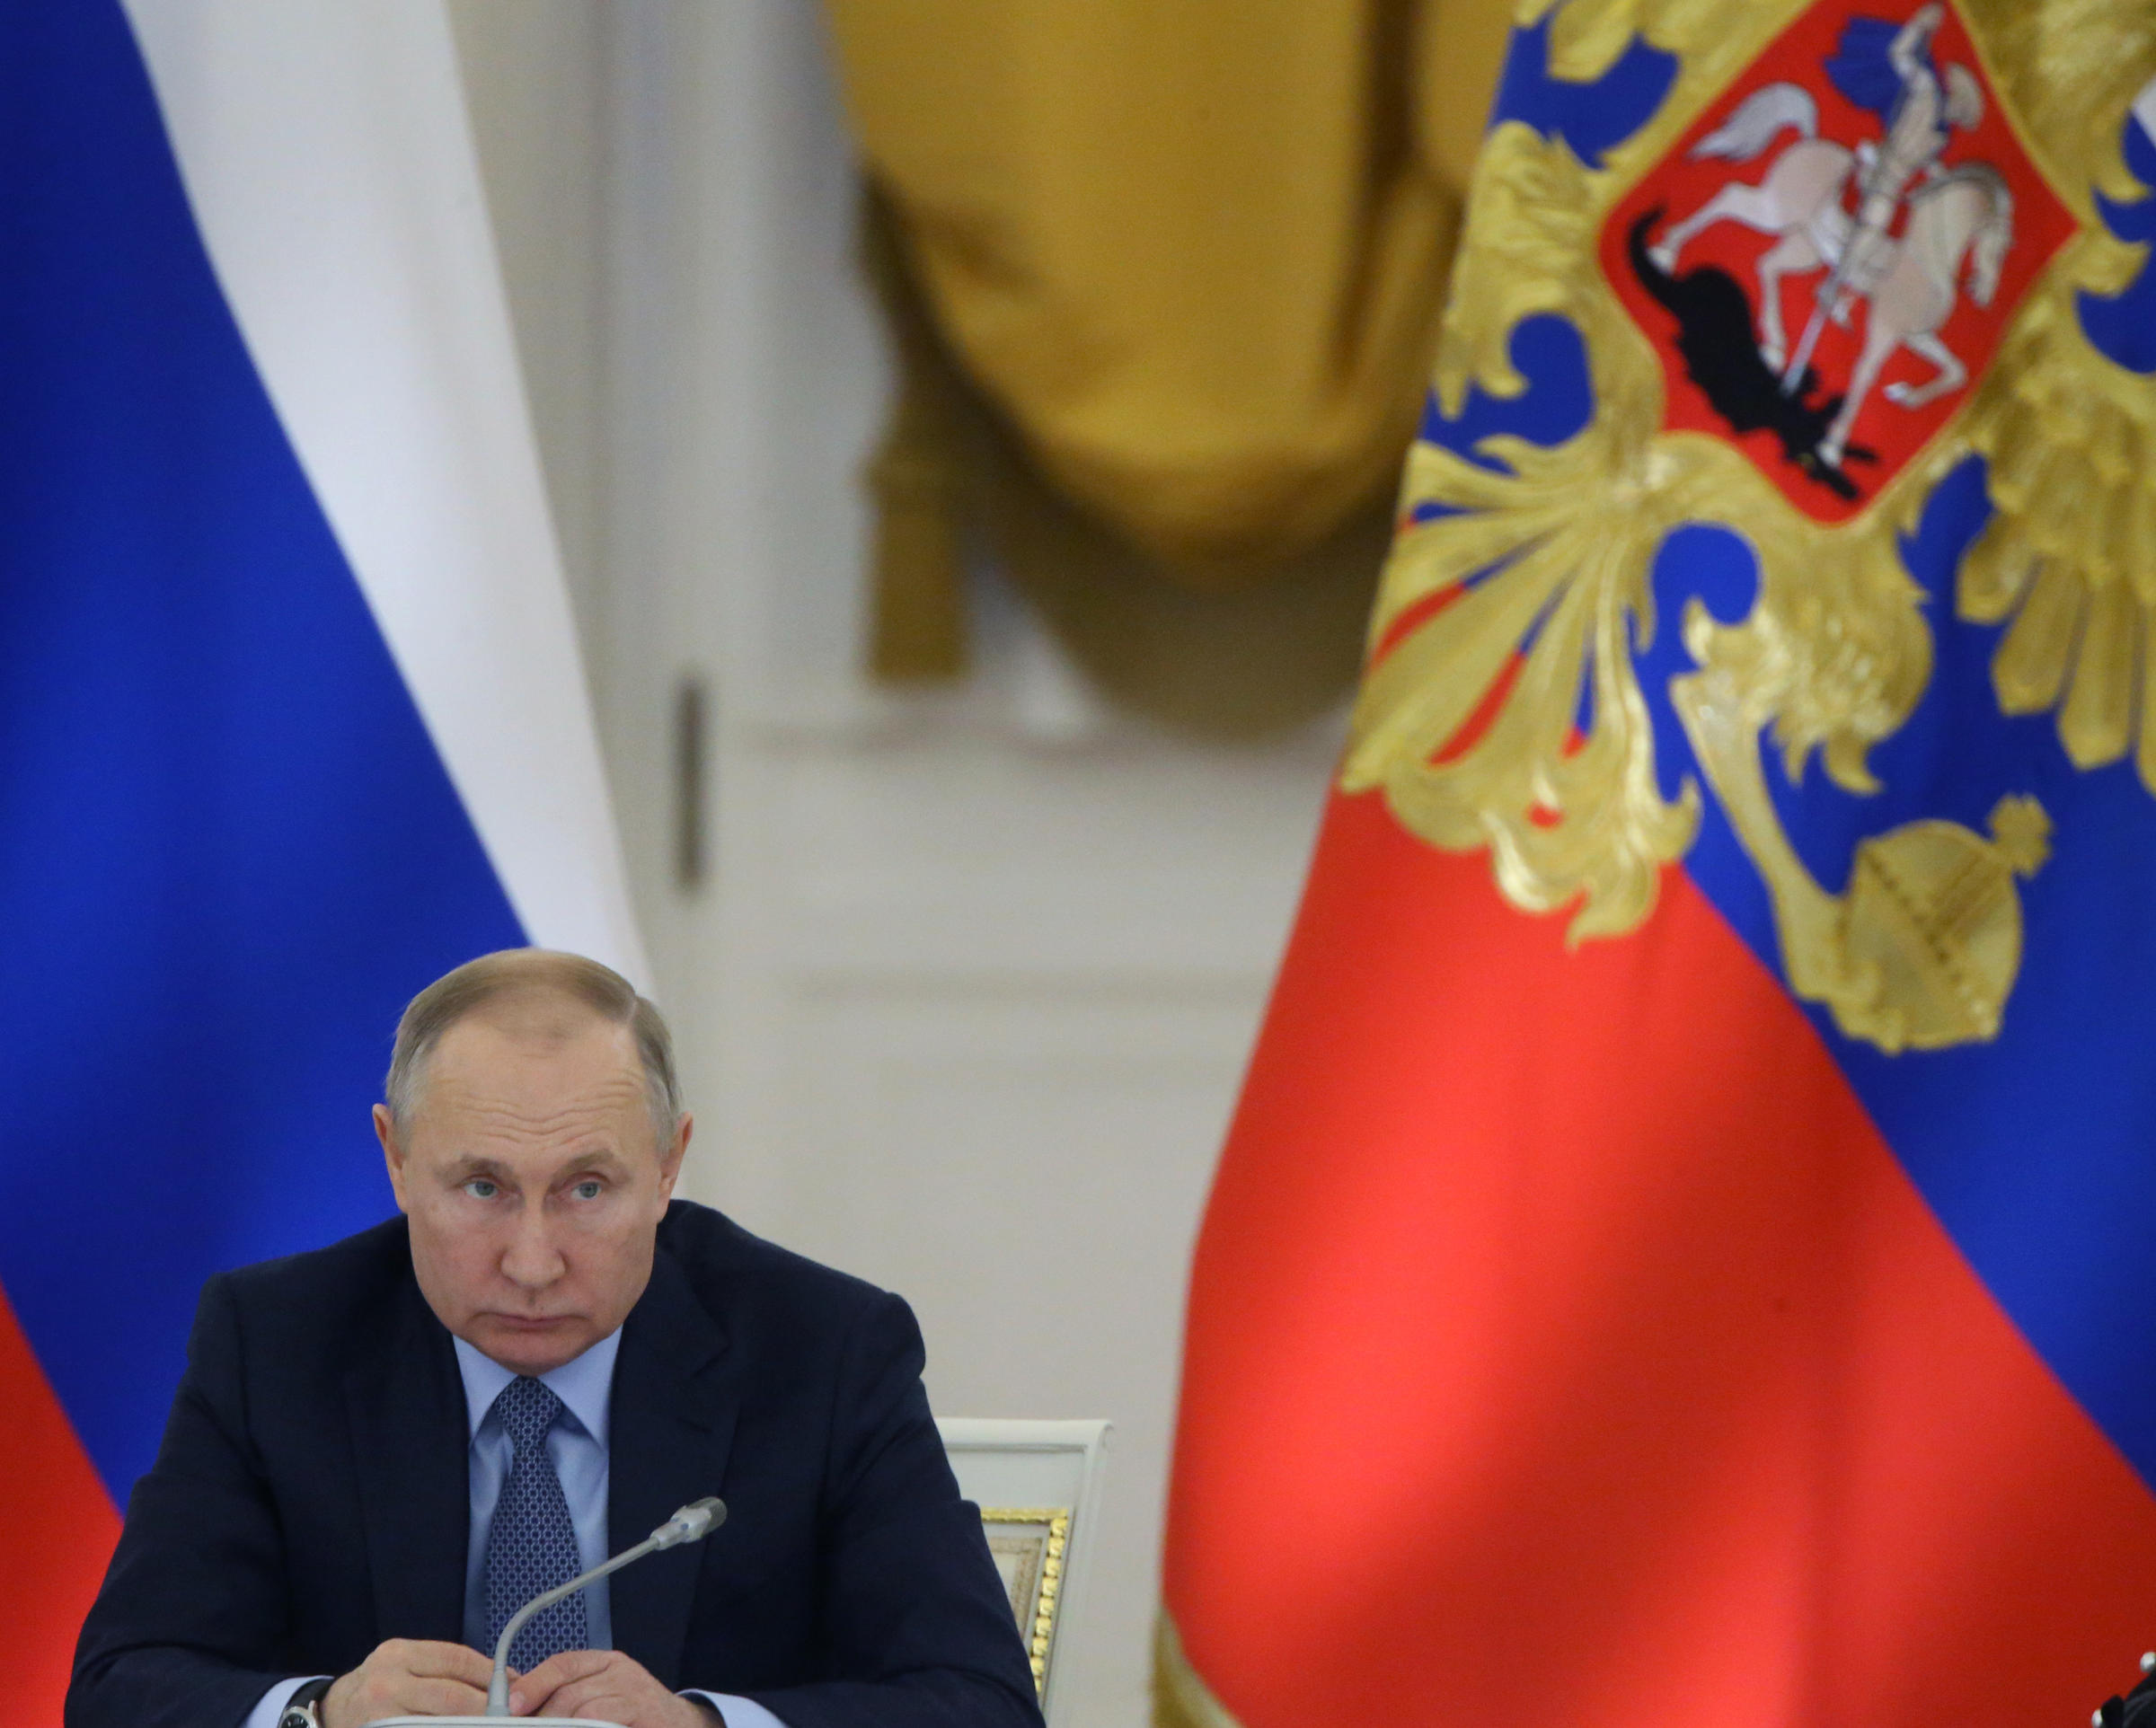 Putin S Rule Turns 20 Many Russians Find Stability A New Generation Sees Stagnation Kosu